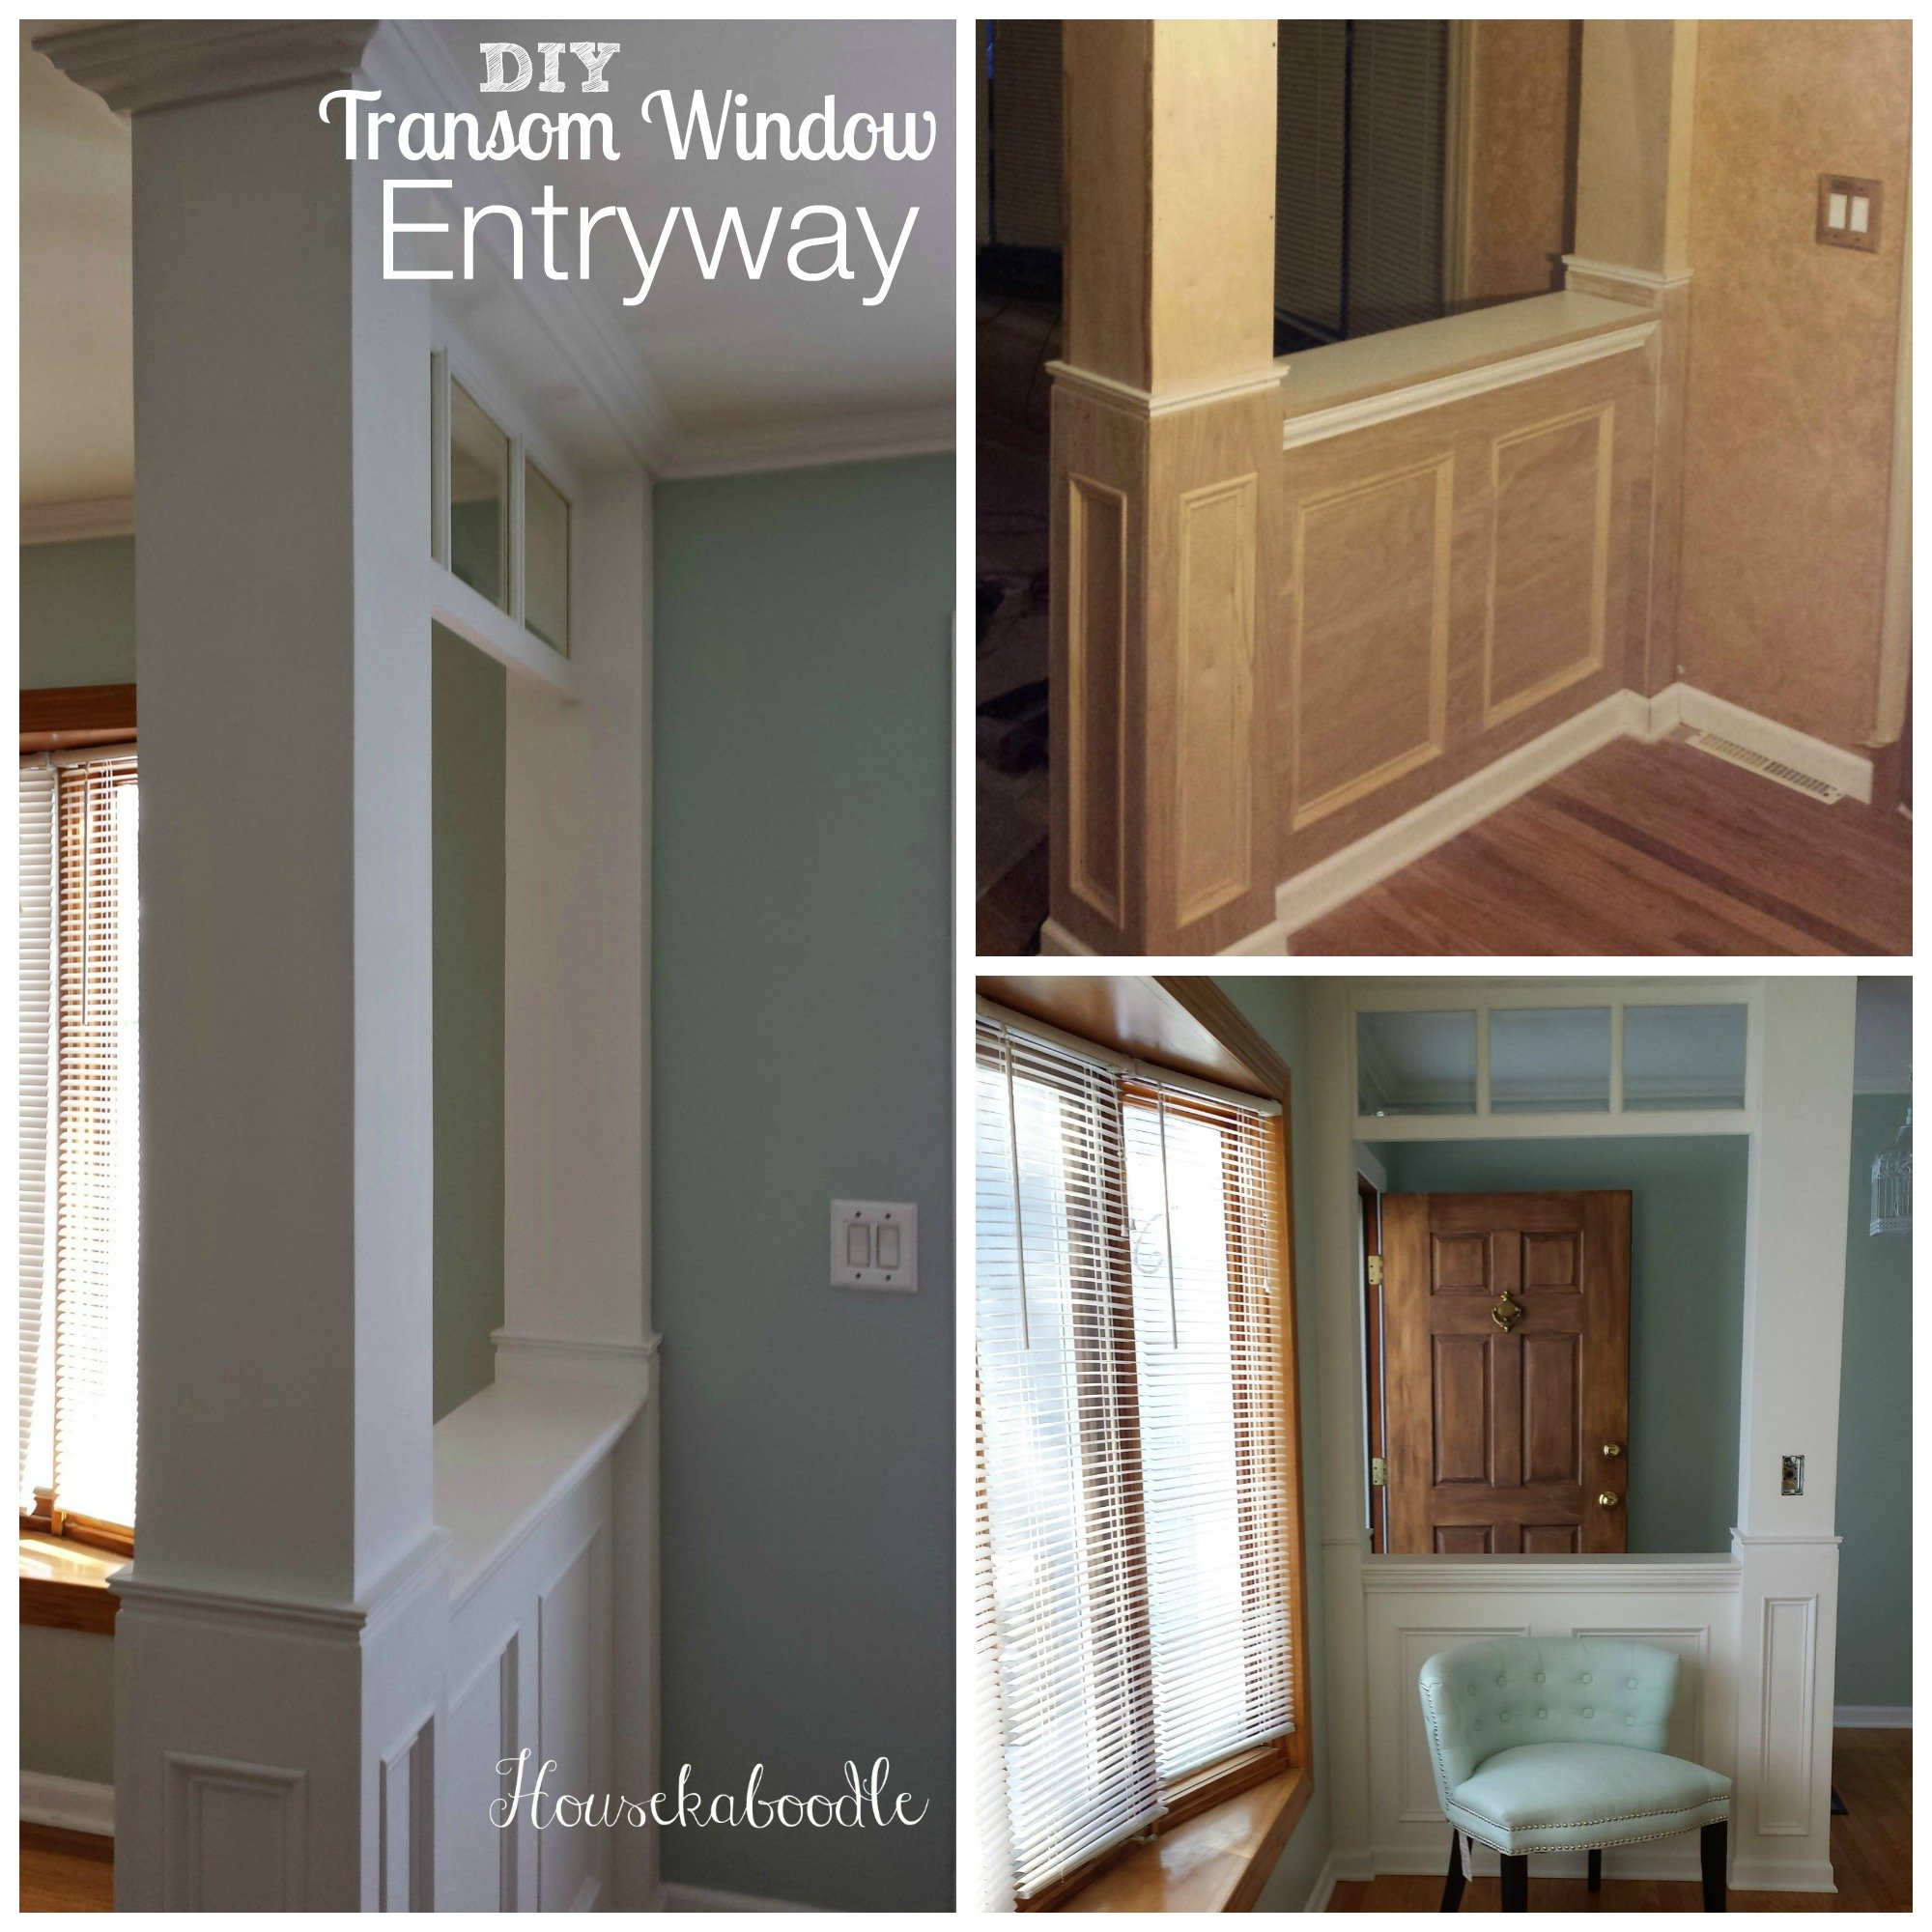 Difference Between Foyer And Entry : Our diy transom window entryway